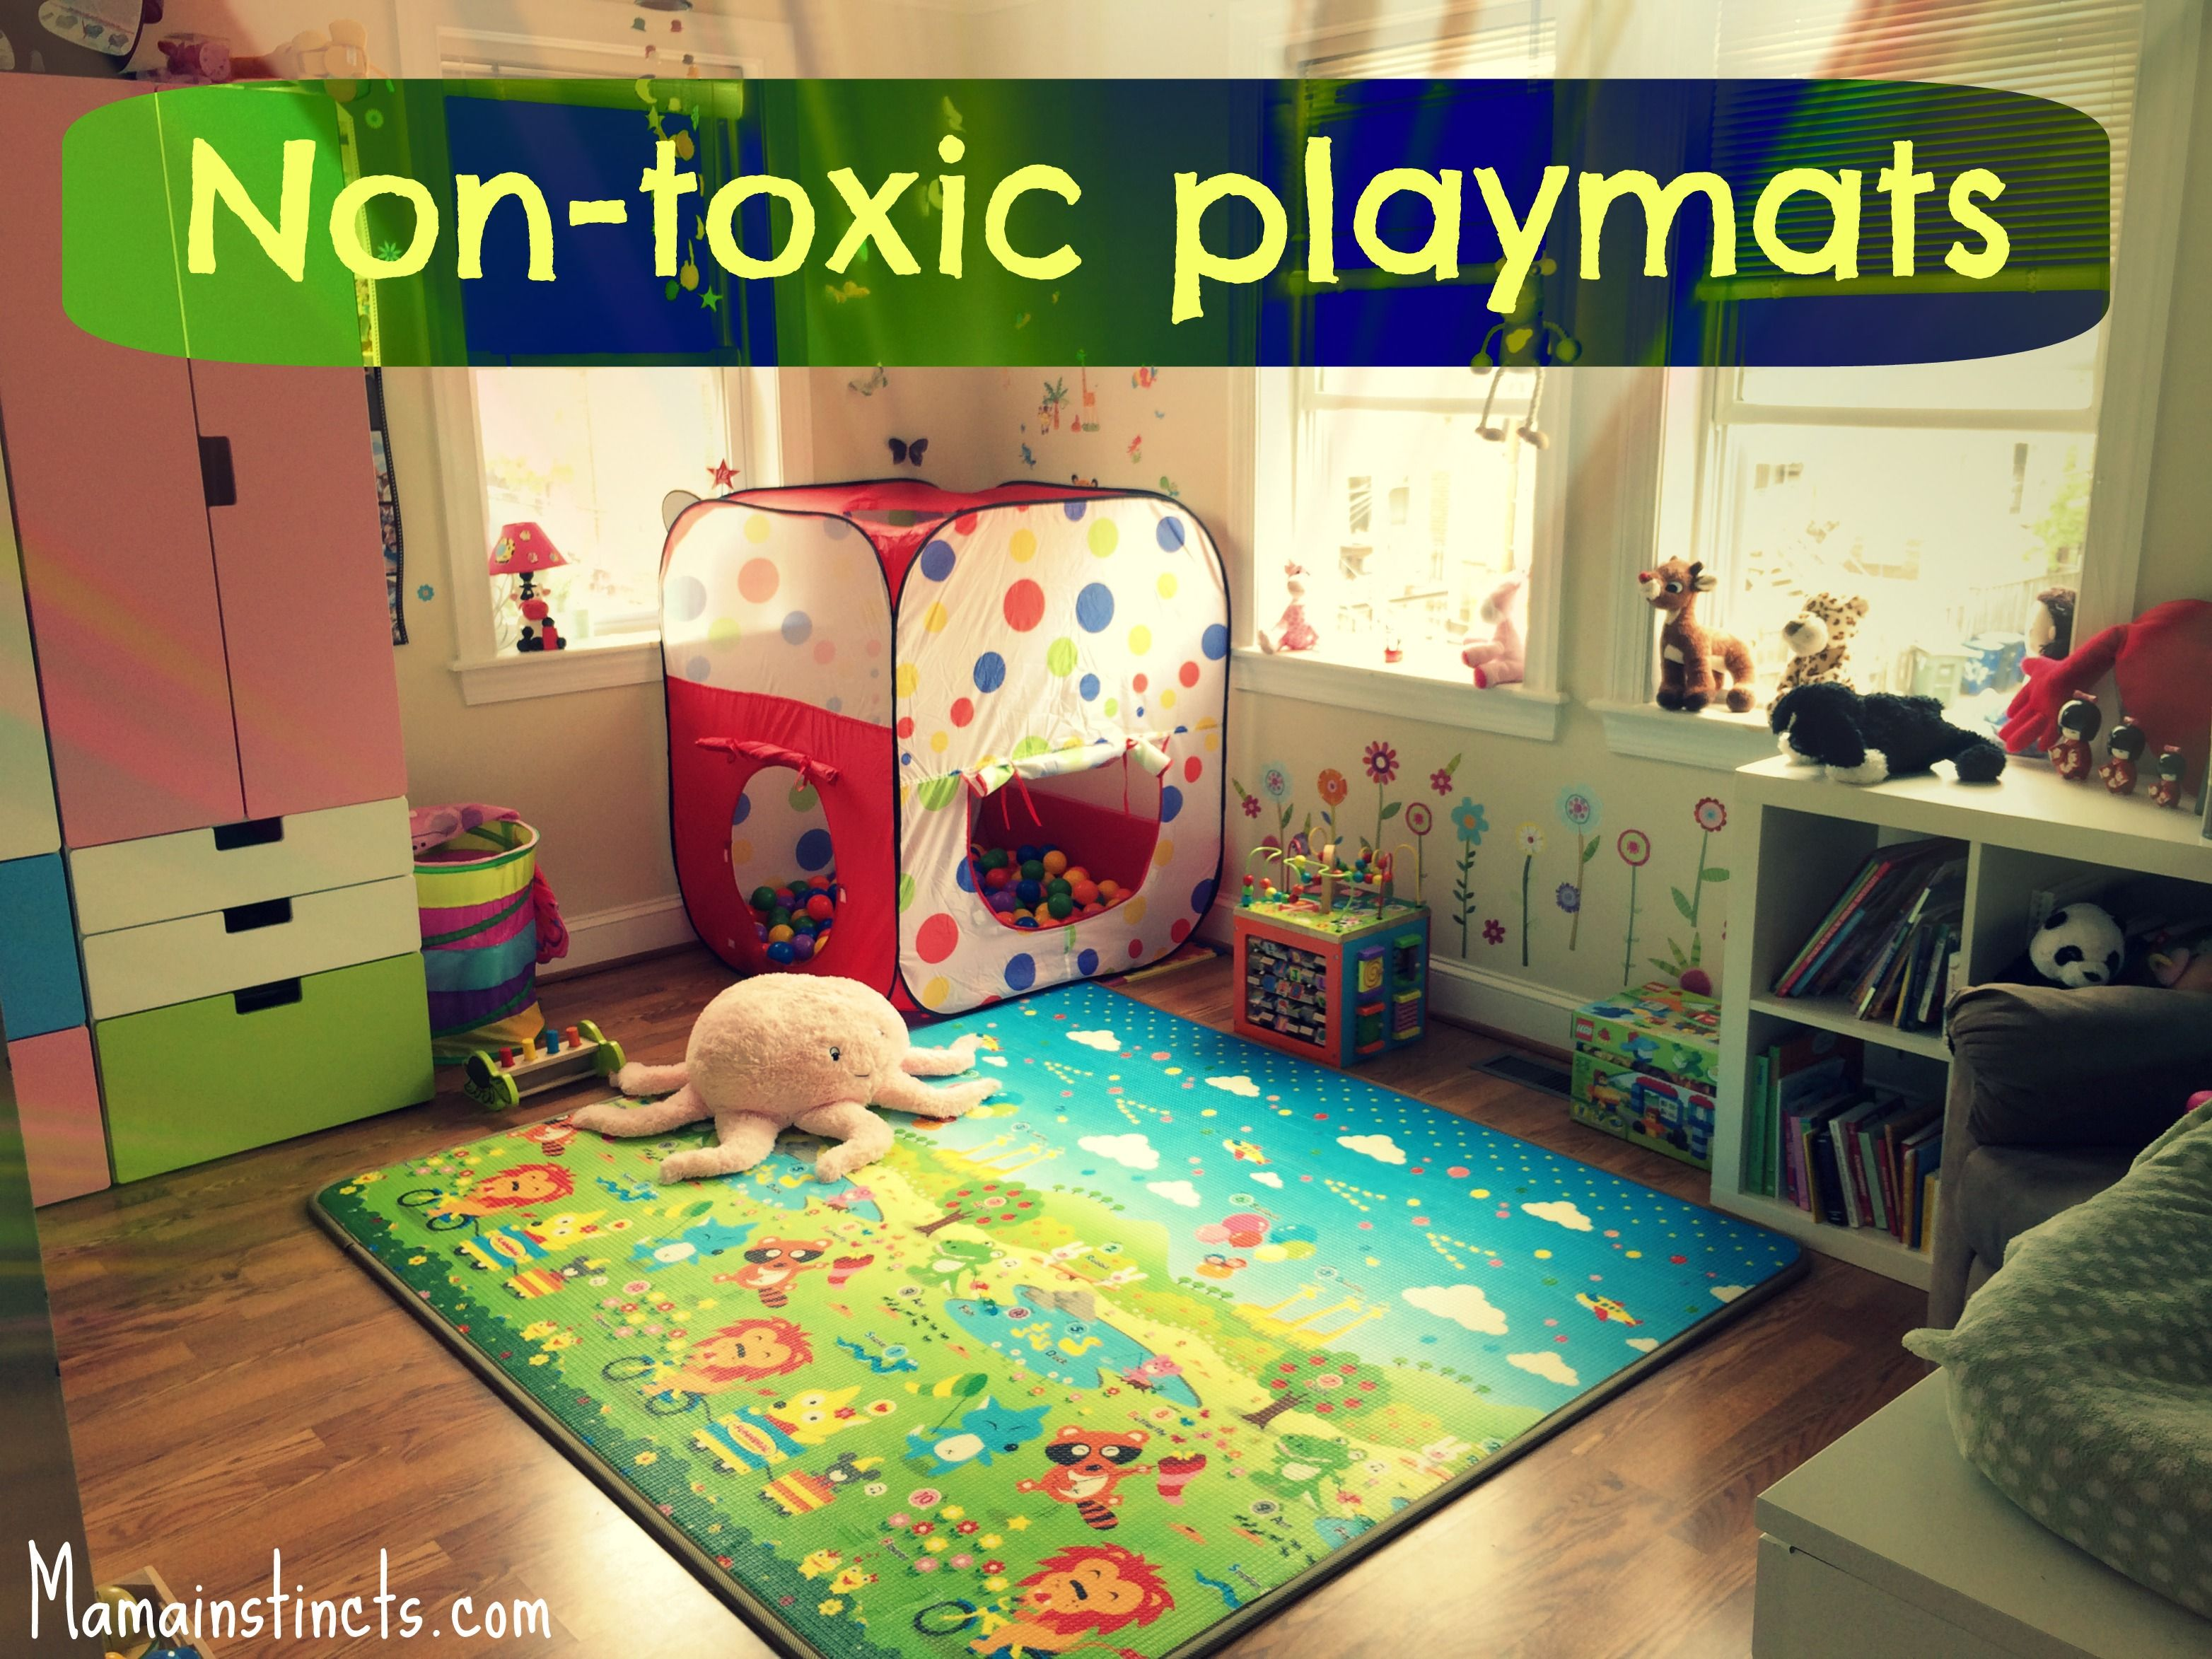 pom circle activity for handmade mat of floor llama play padded watercolor garden image purple babies mats baby cactus products copy round